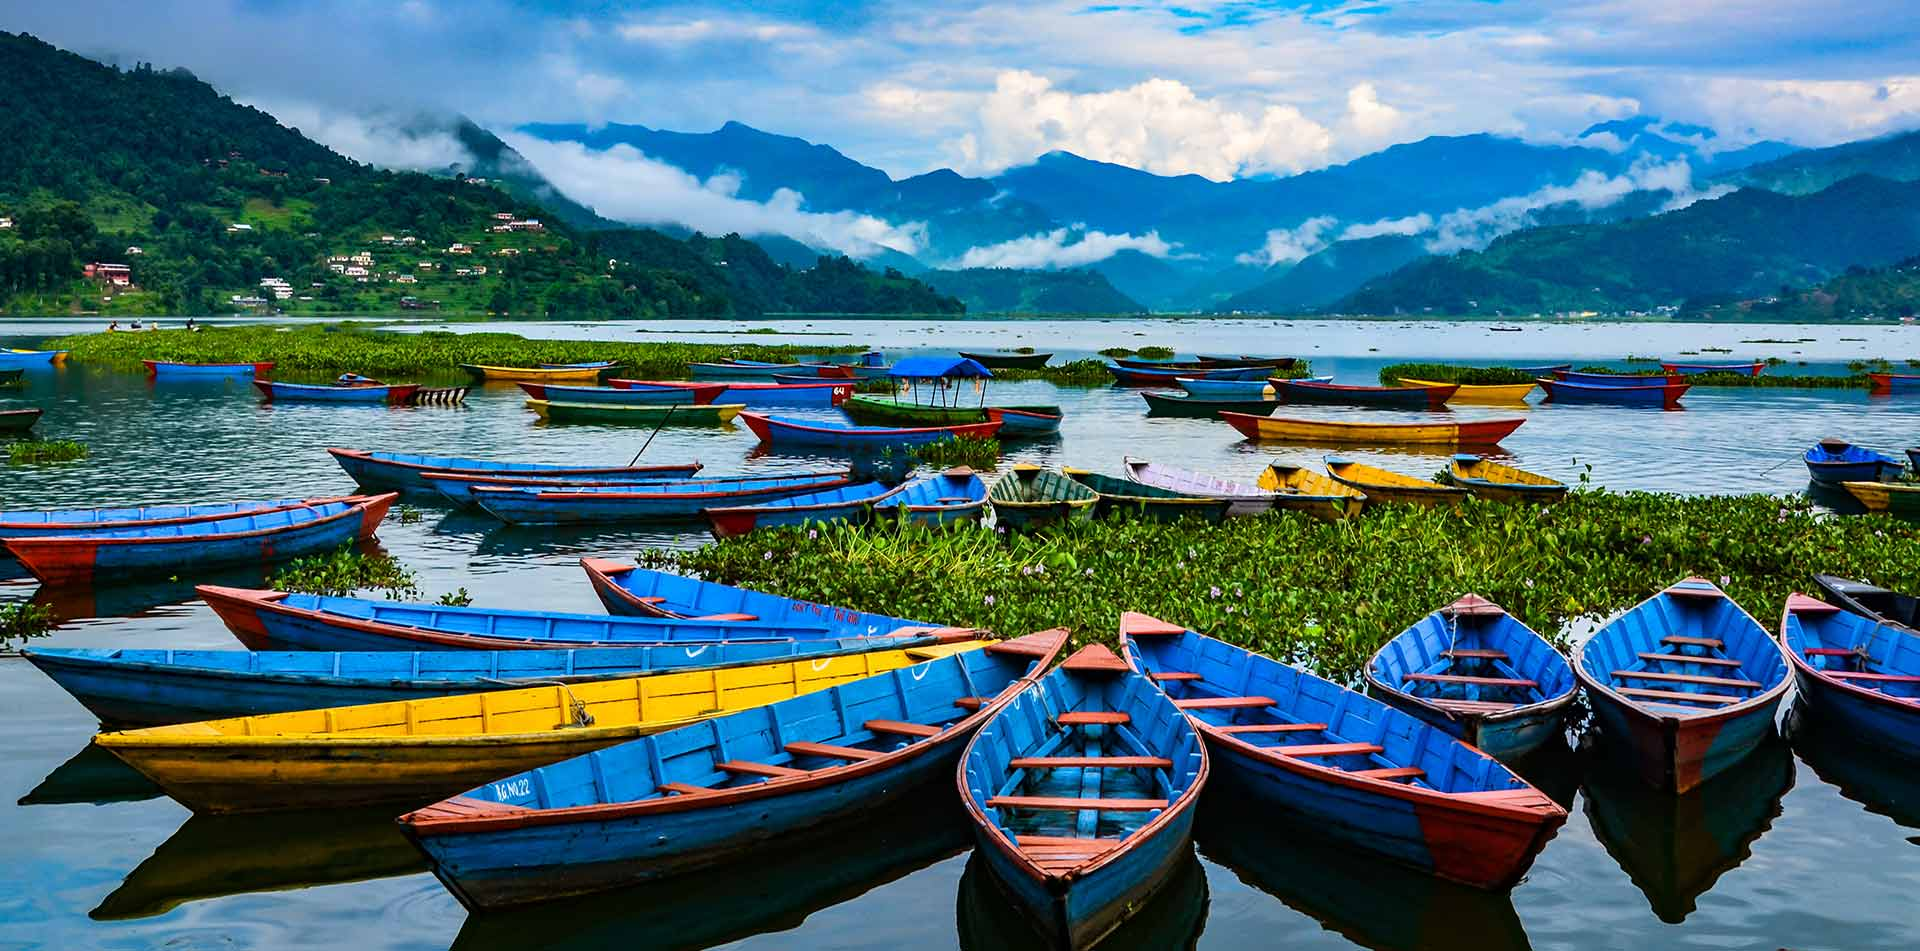 Colorful row boats docked on lake